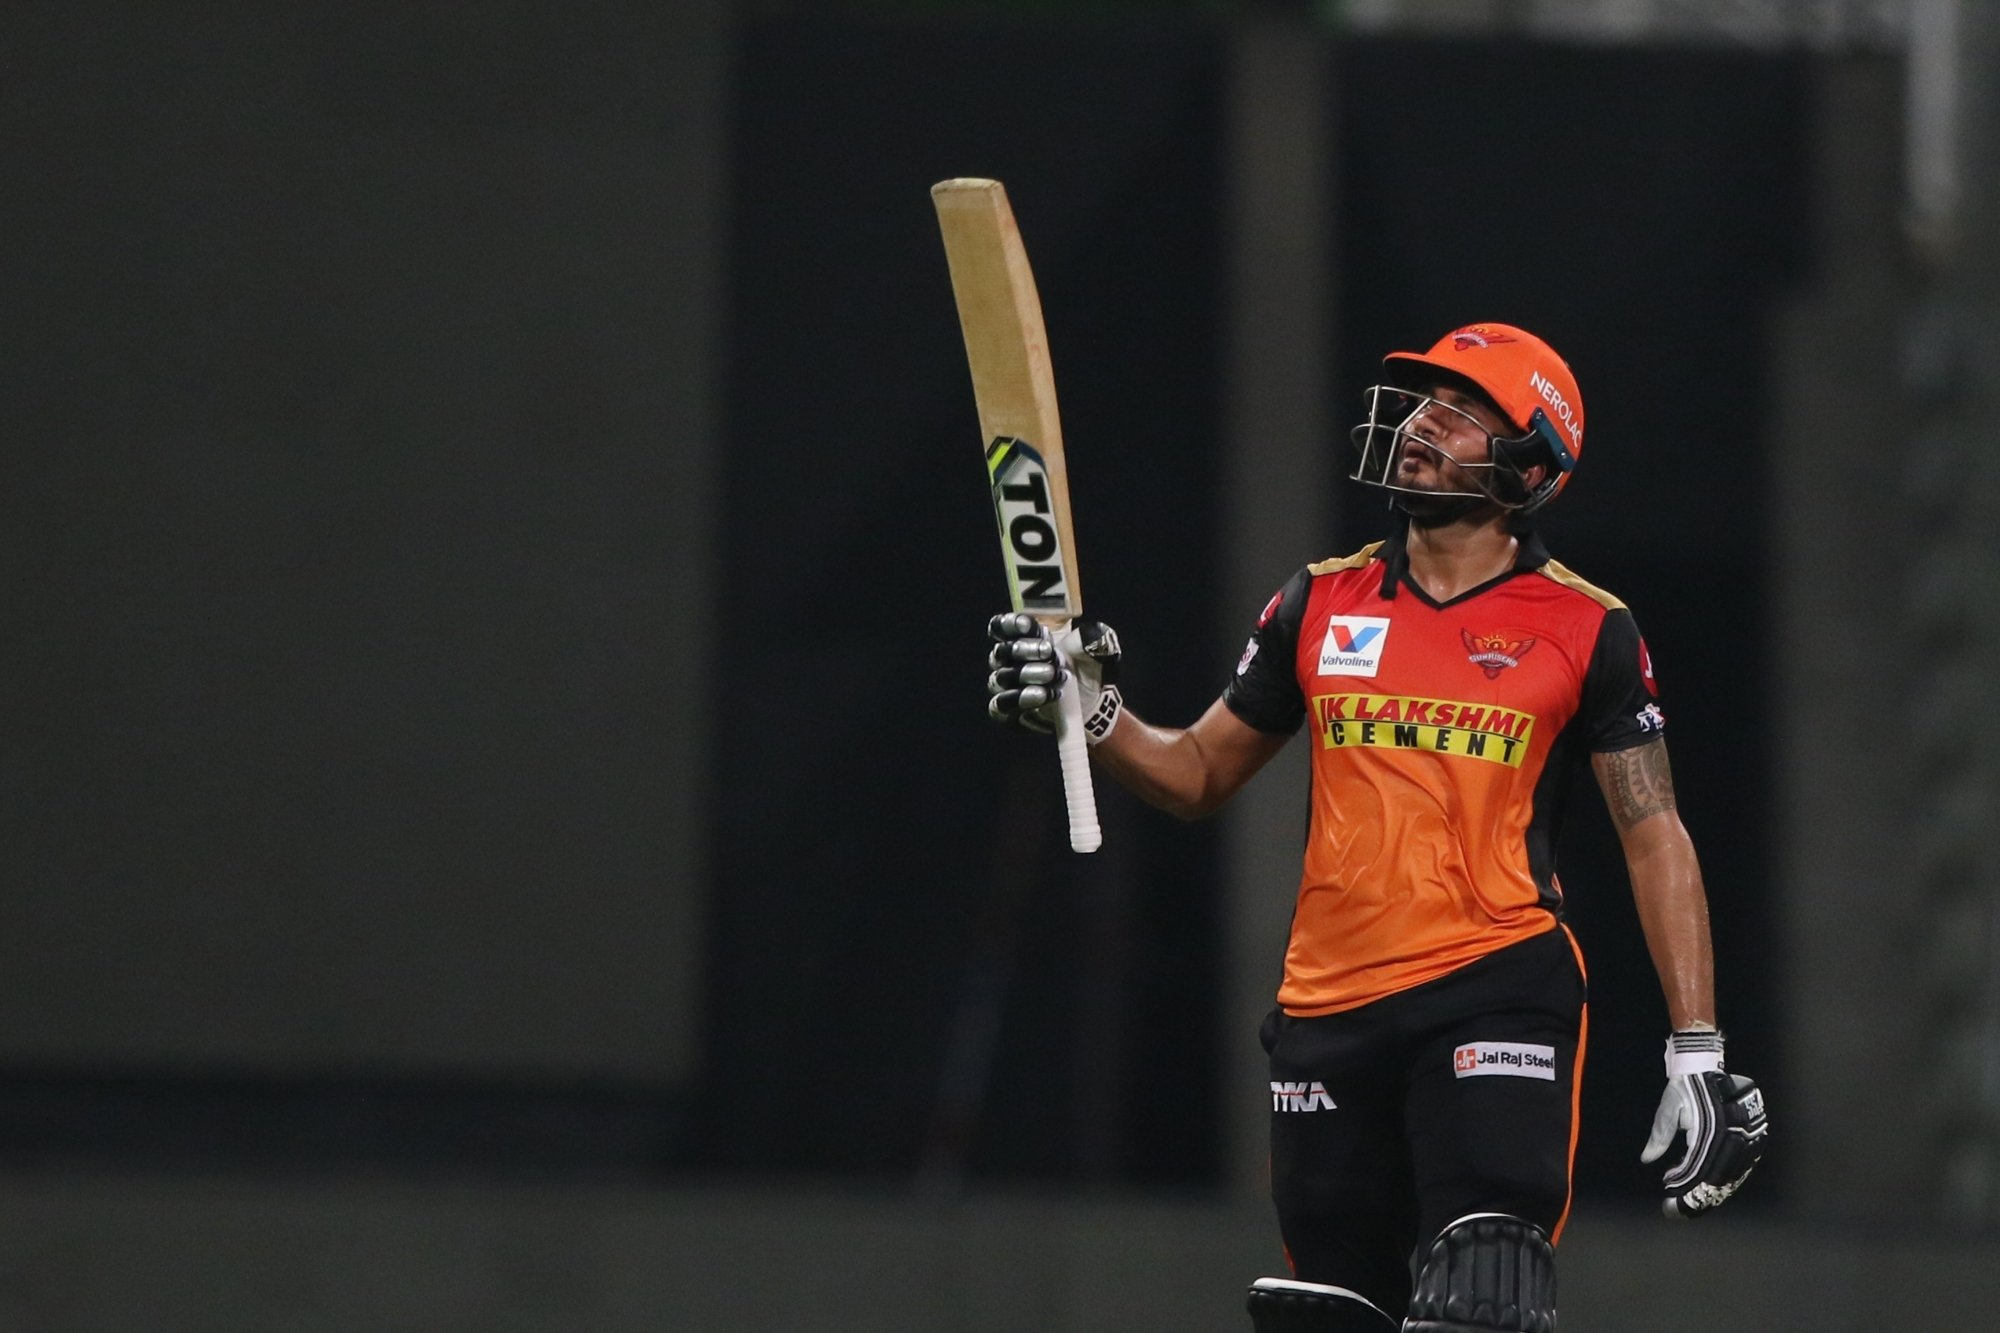 Abu Dhabi: Manish Pandey of Sunrisers Hyderabad raises his bat after scoring a fifty during match 8 of season 13 of Indian Premier League (IPL) between the Kolkata Knight Riders and the Sunrisers Hyderabad held at the Sheikh Zayed Stadium, Abu Dhabi in the United Arab Emirates on the 26th September 2020. (Photo: BCCI/IPL)